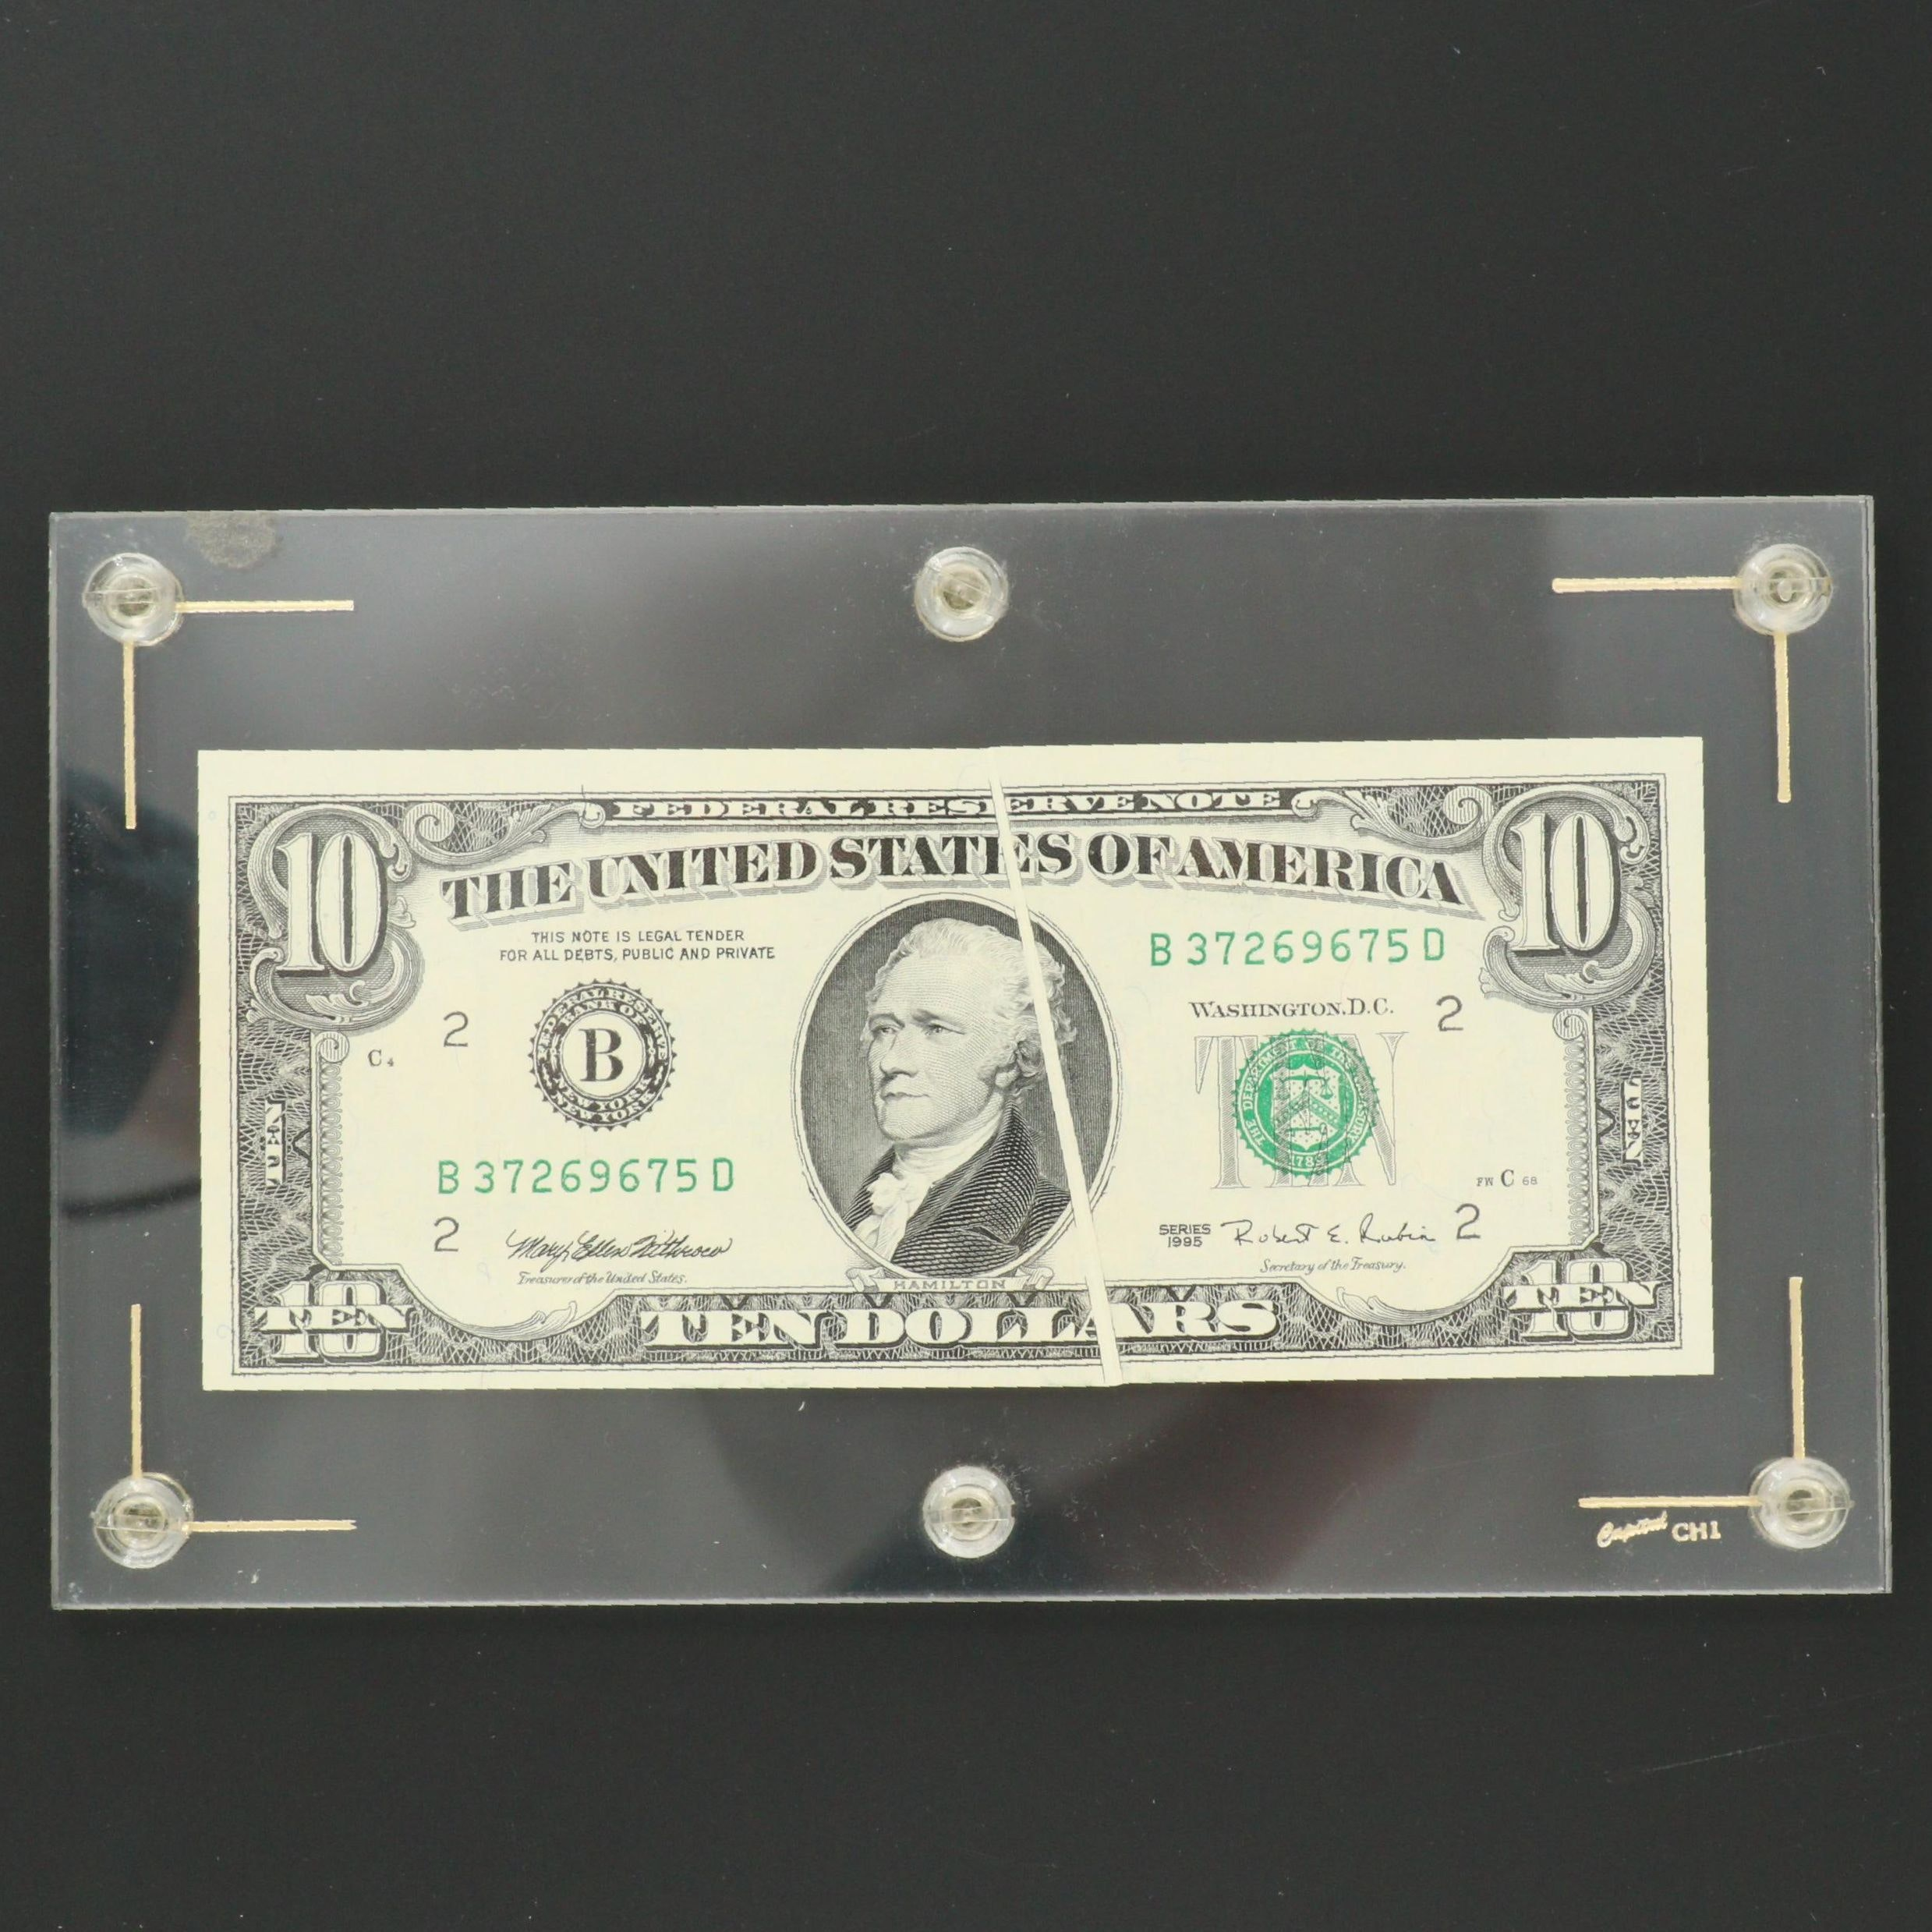 1995 U.S. $10 Federal Reserve Note with Blank Crease Error